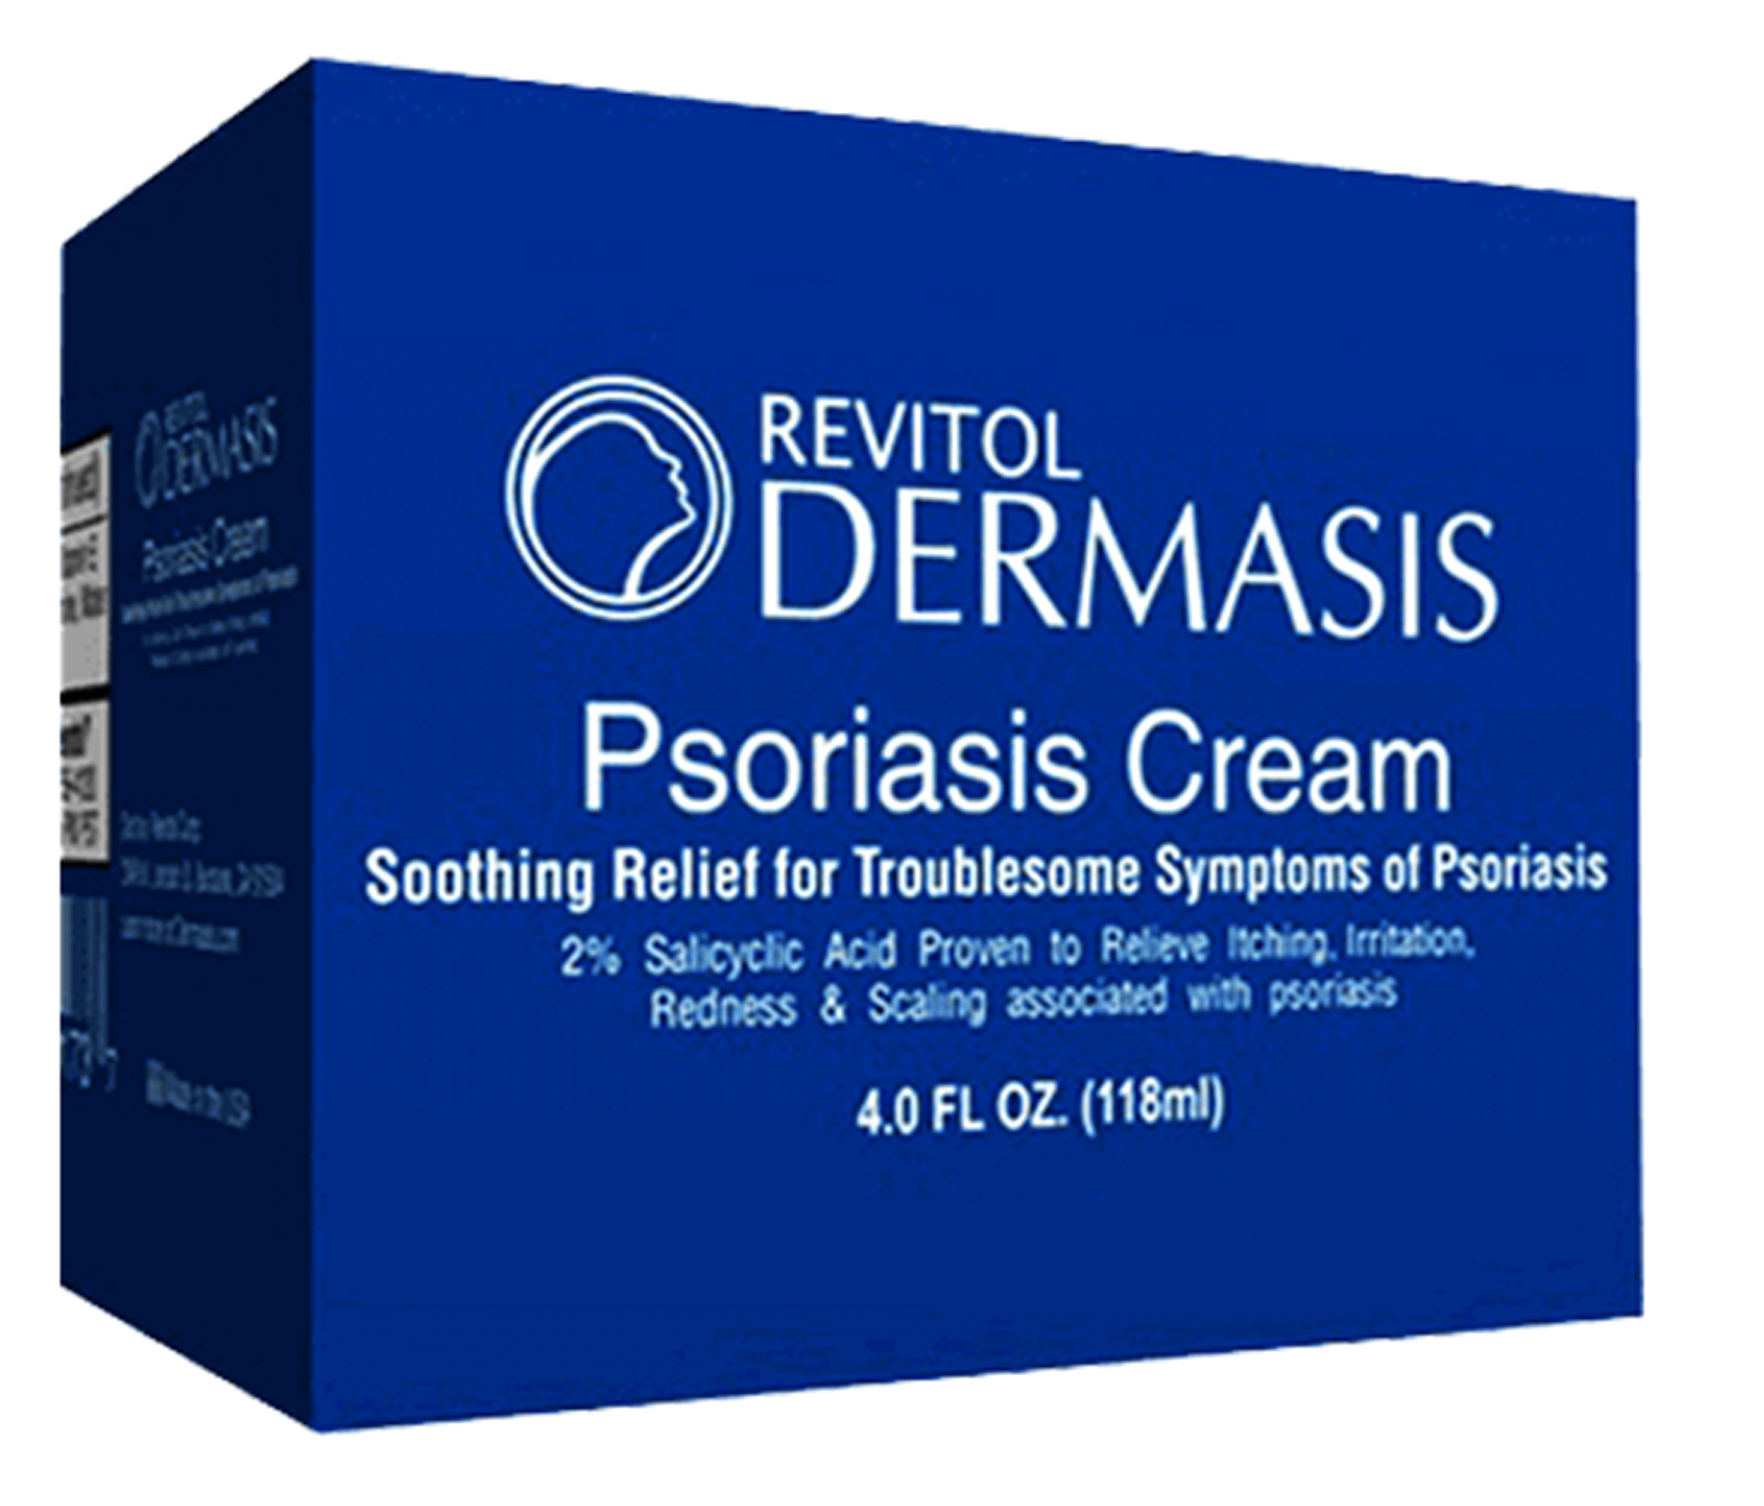 Revitol-Dermasis-Psoriasis-Cream-review